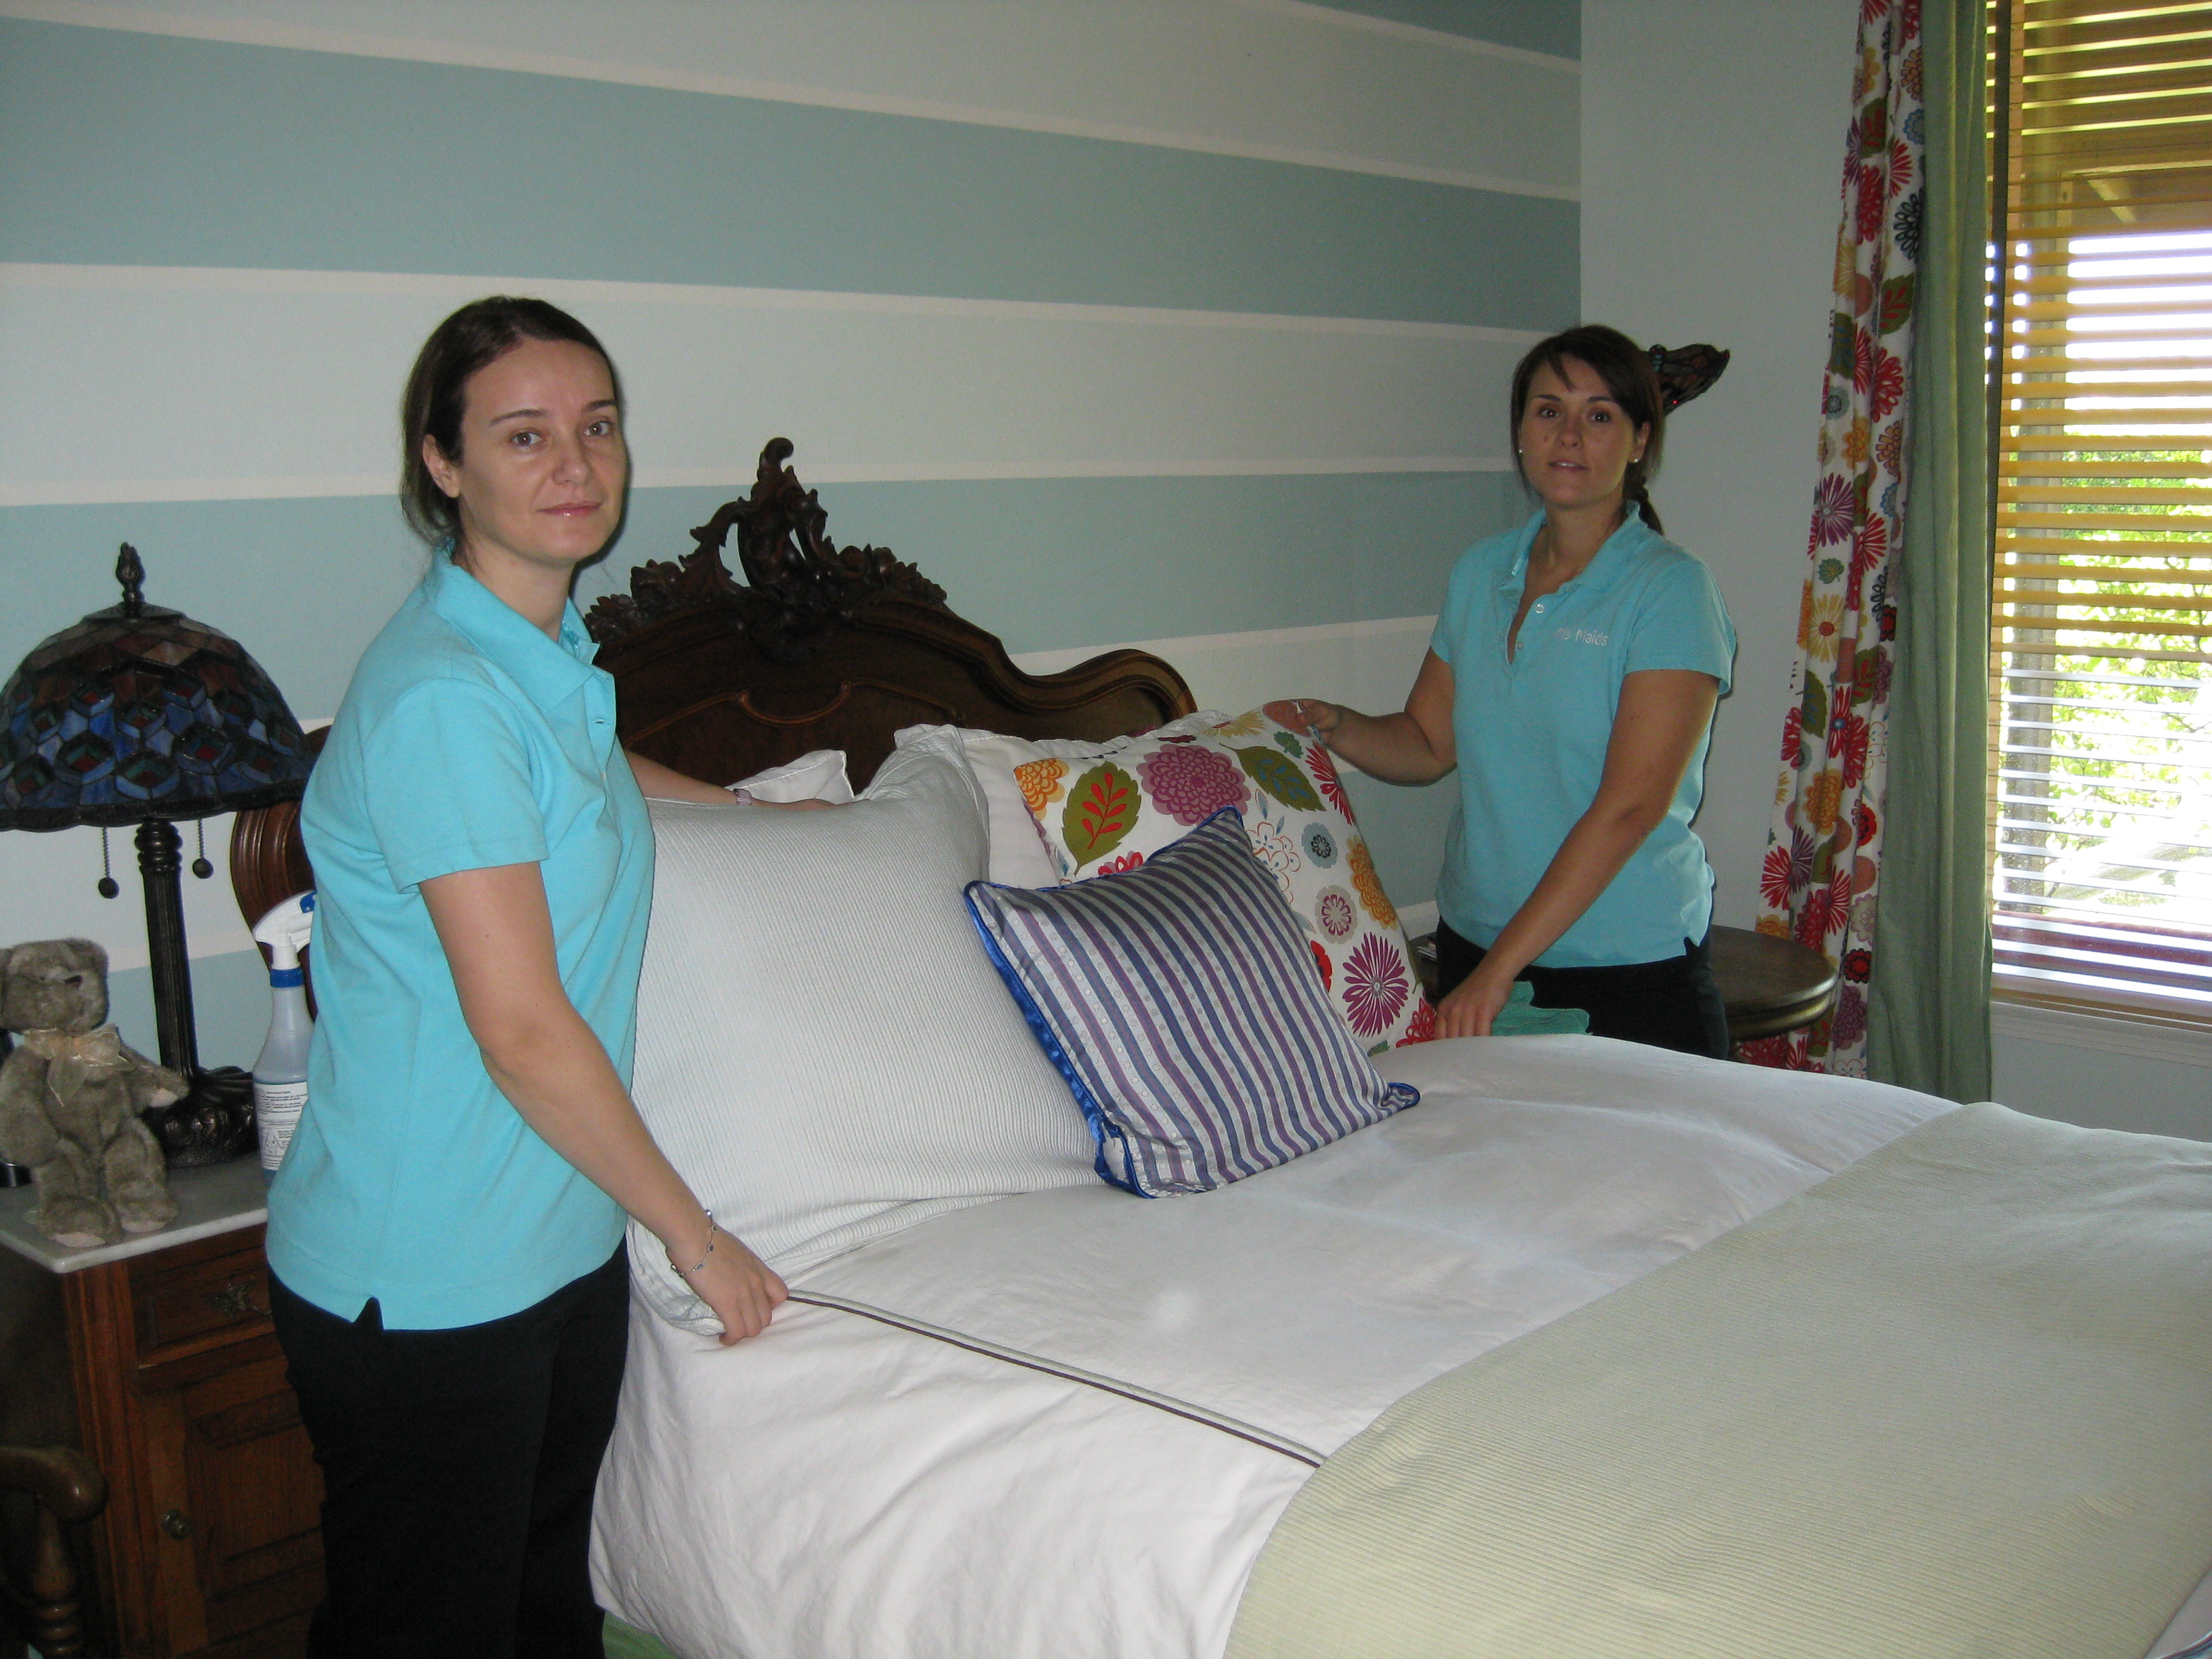 My Maids House Cleaning Service image 4